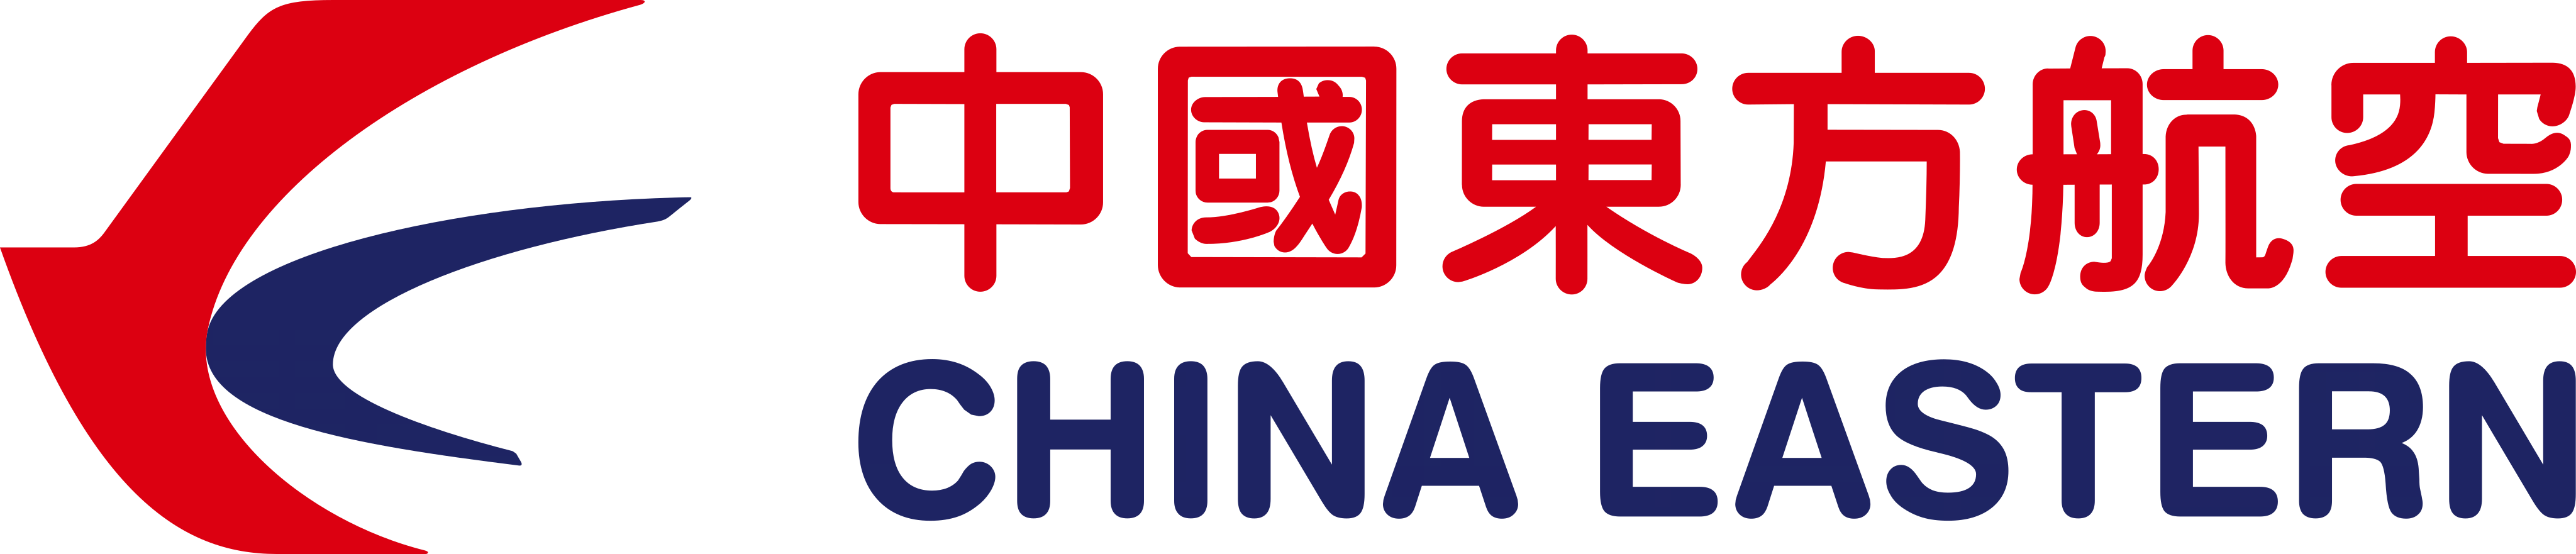 china eastern airlines logo - China Eastern Airlines Logo